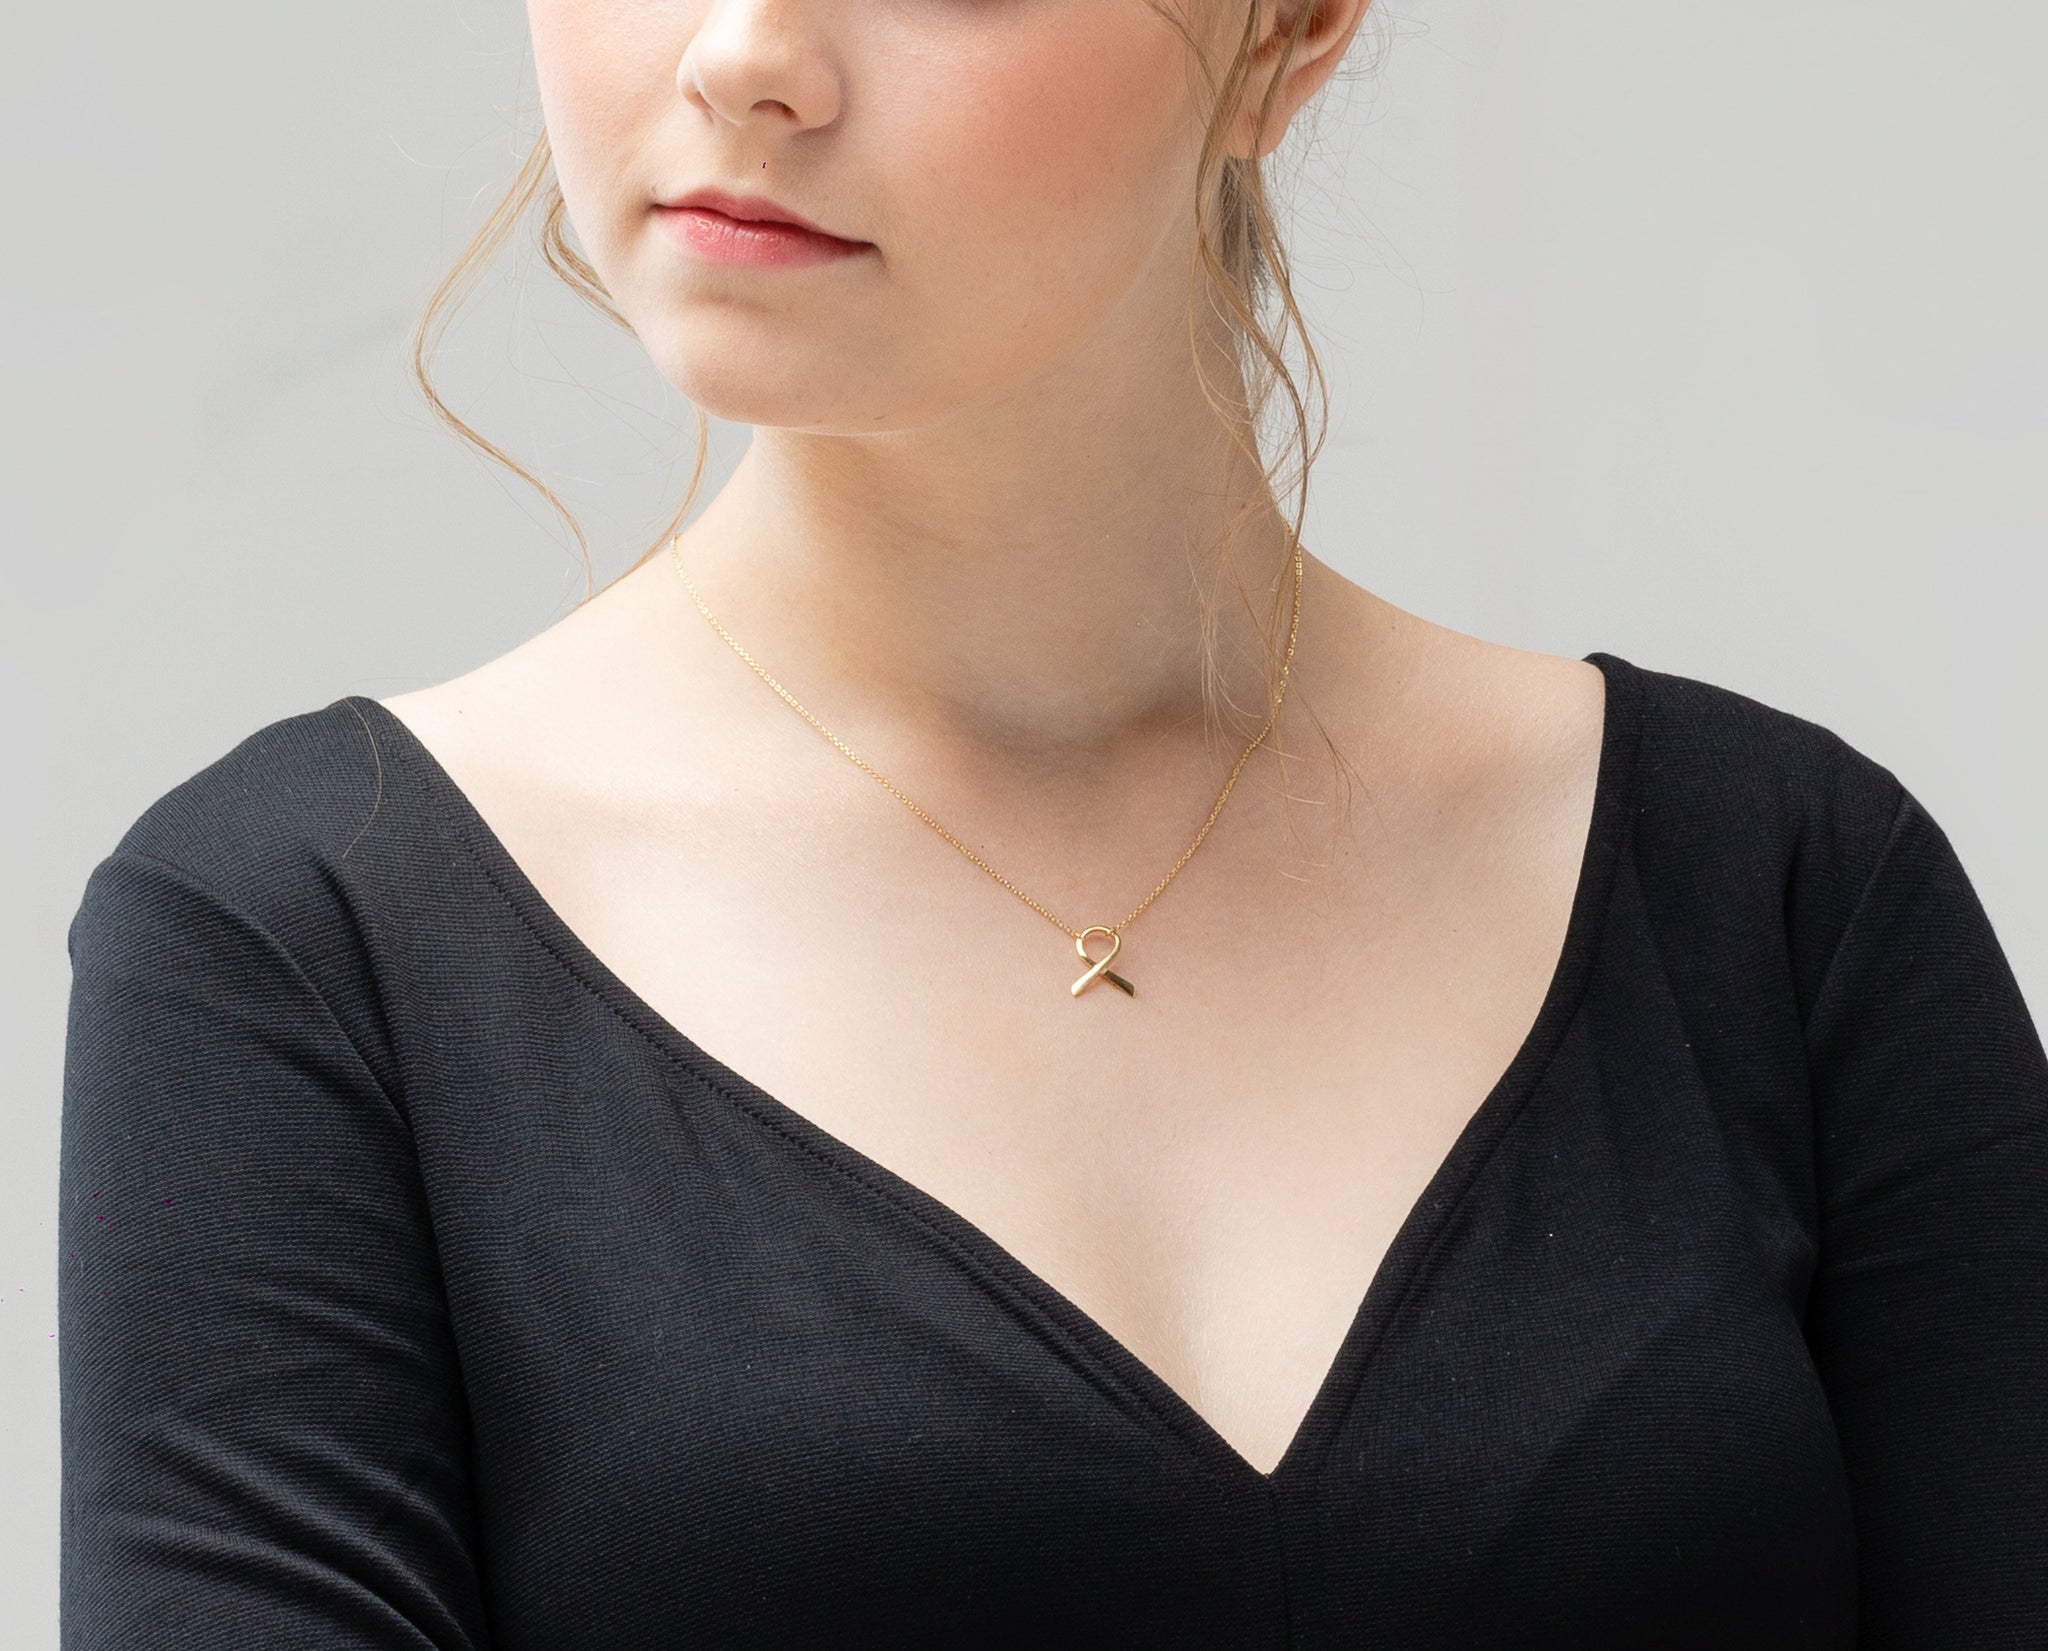 Dainty Delicate Ribbon Necklace